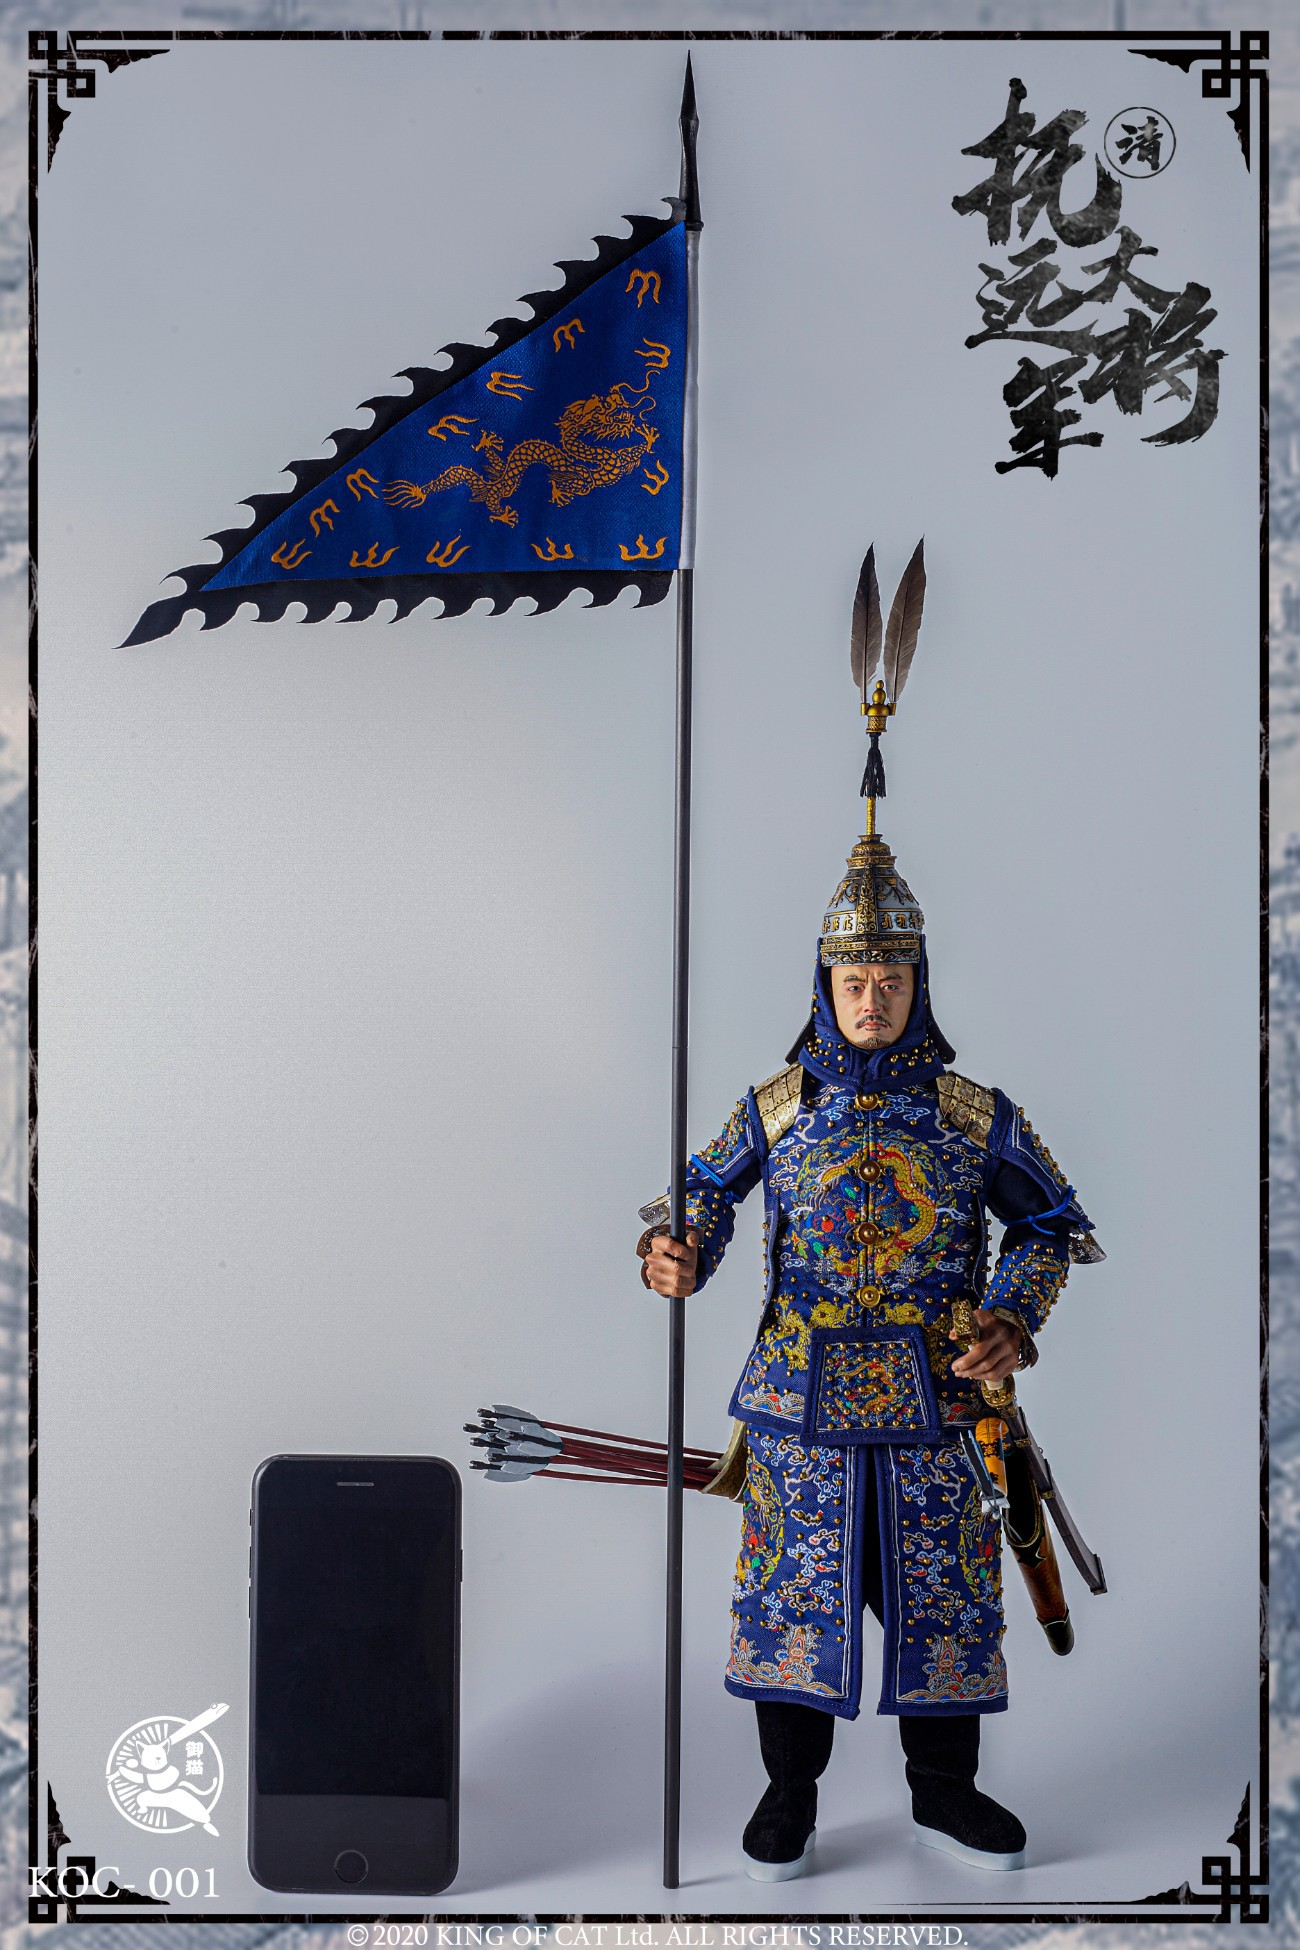 military - NEW PRODUCT: Sonder: 1/6 Song Dynasty Series-Yue Jiaxing Yang Zaixing Action Figure (SD005#) 191858bldwkhy4mt4mmh4t